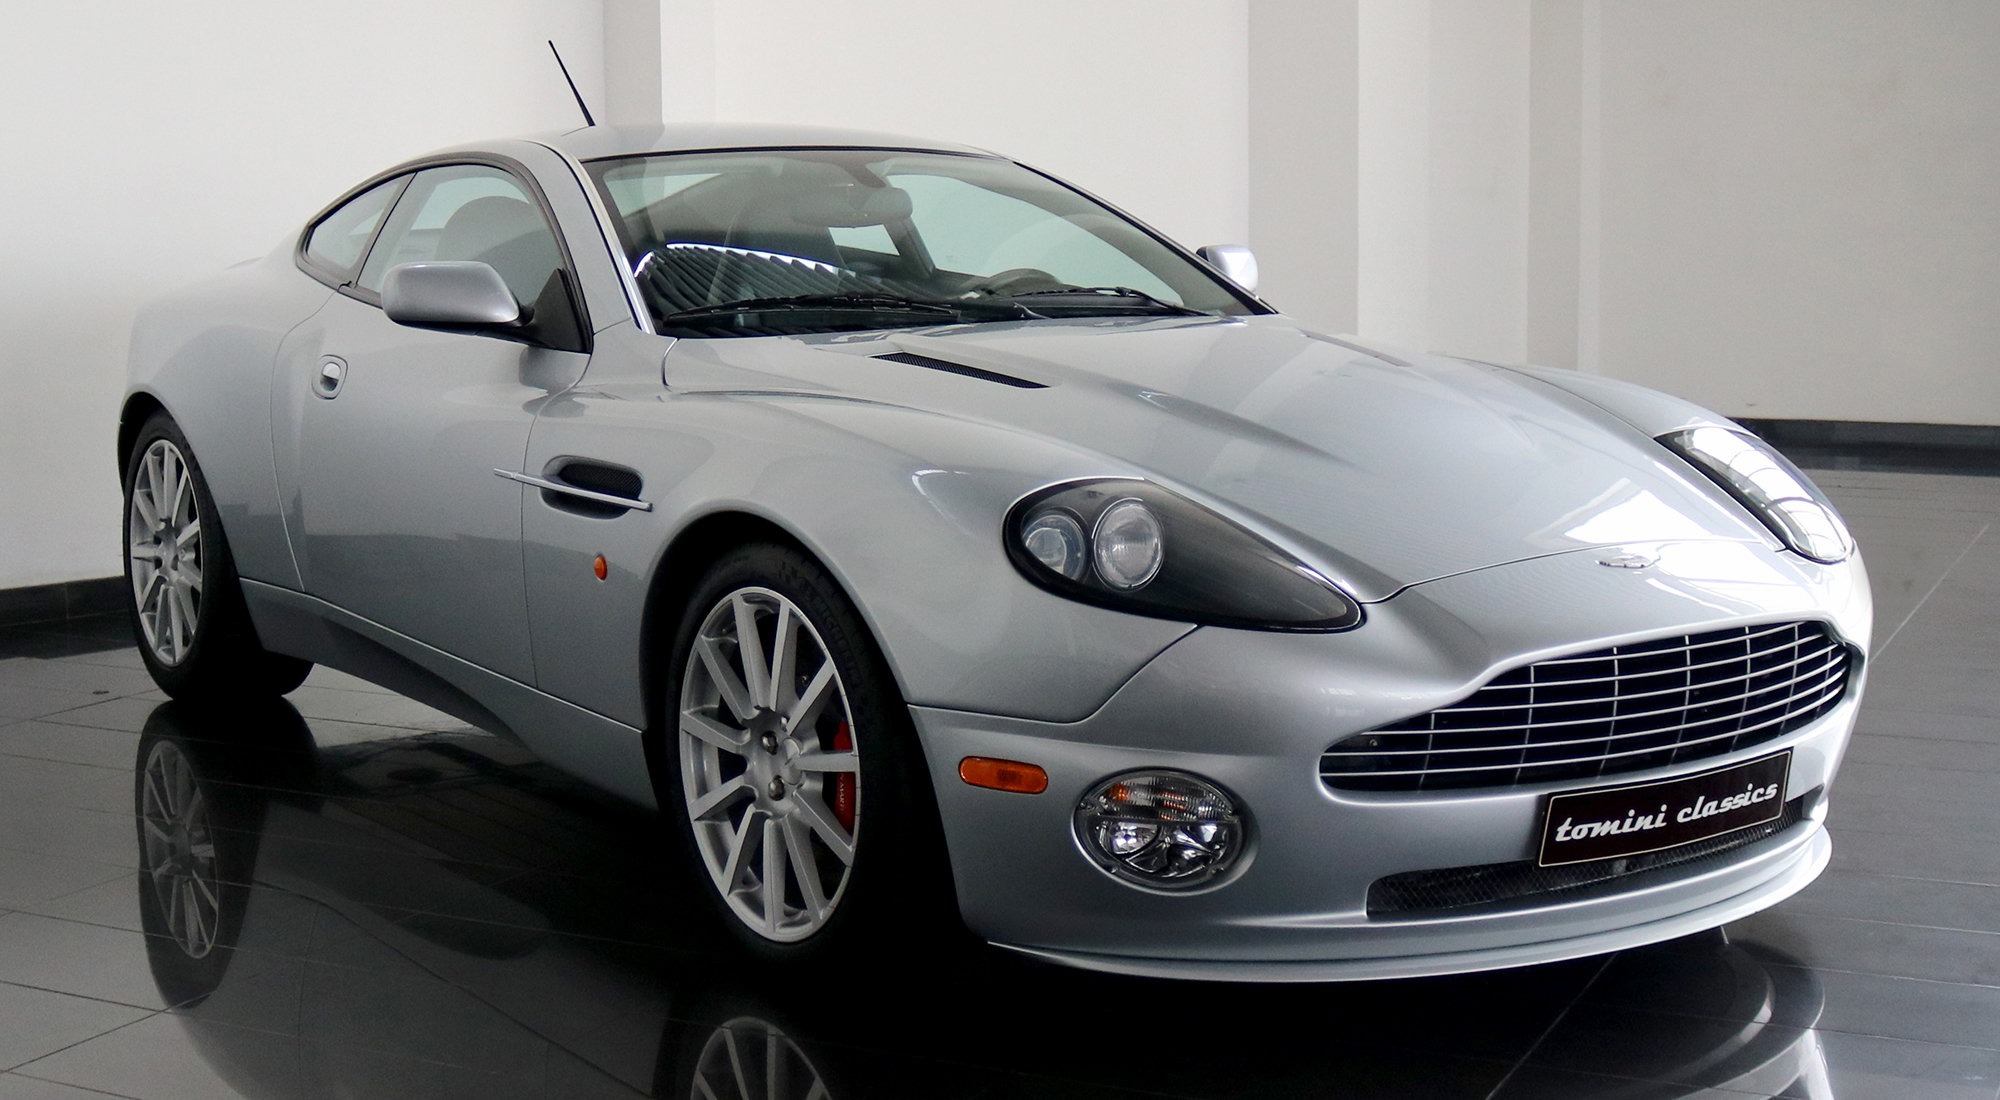 Aston Martin Vanquish S (2006) For Sale (picture 1 of 6)